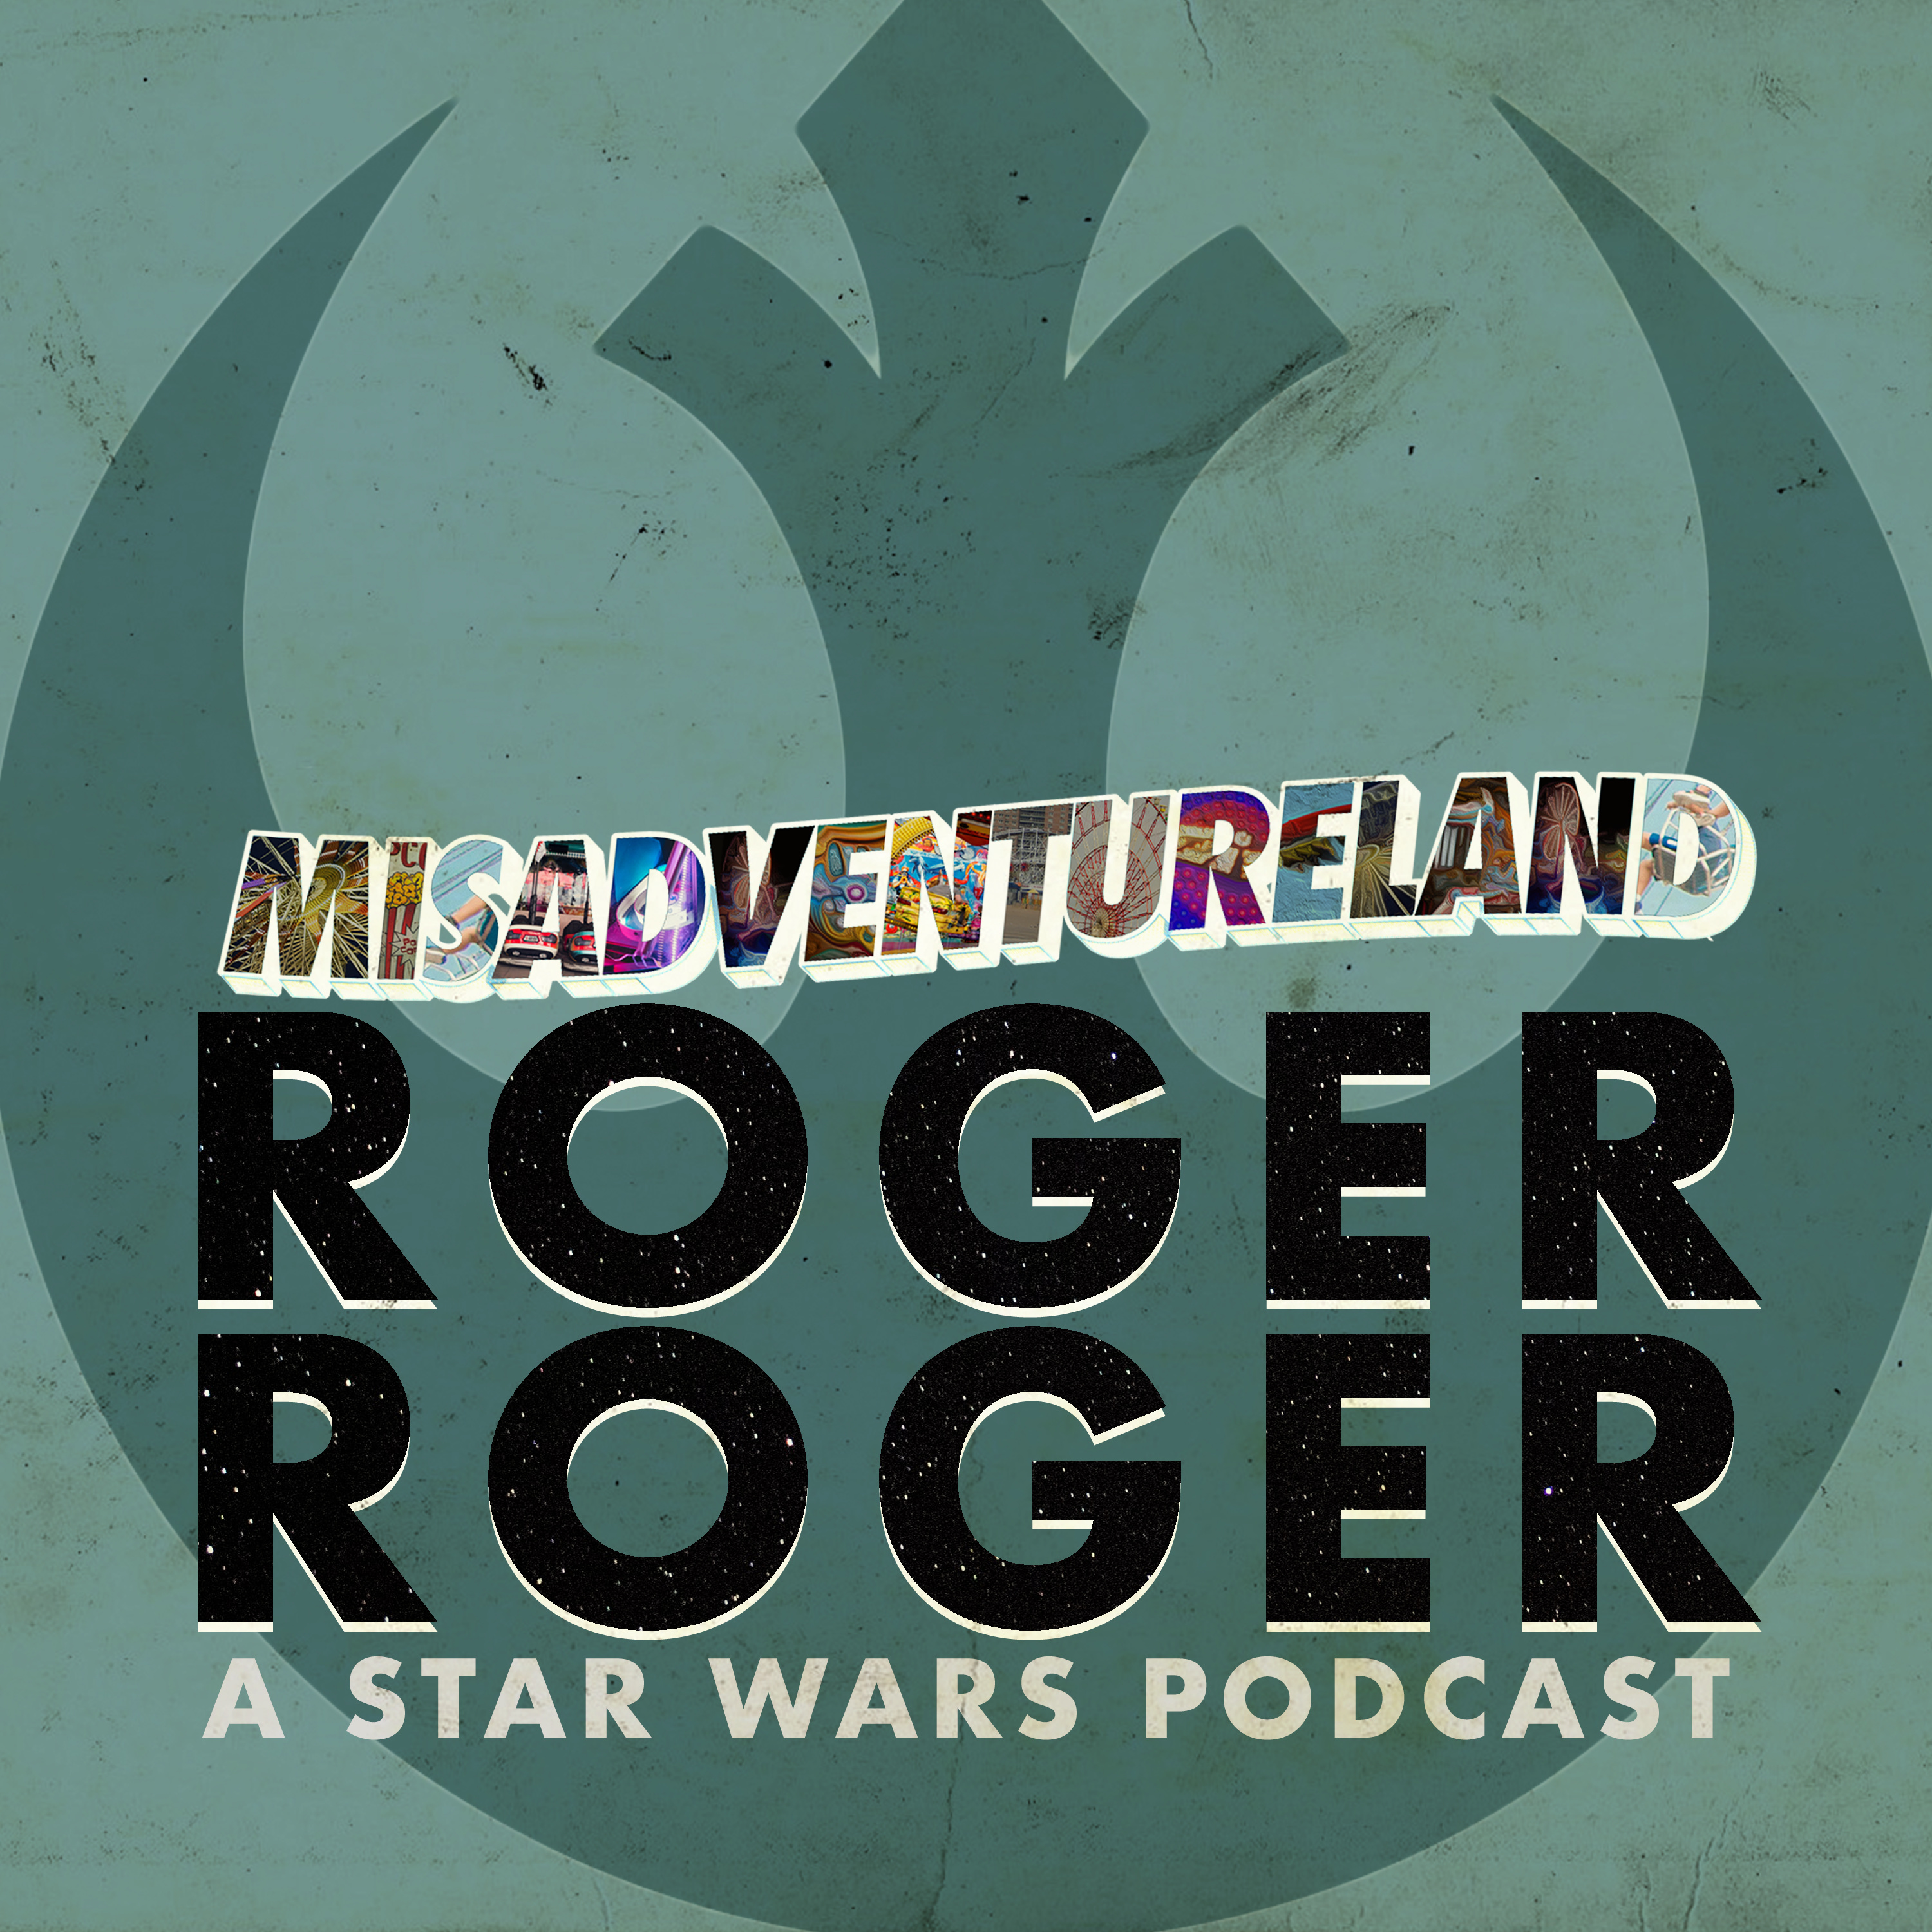 2. Star Wars Episode 2 Attack of the Clones   Roger Roger